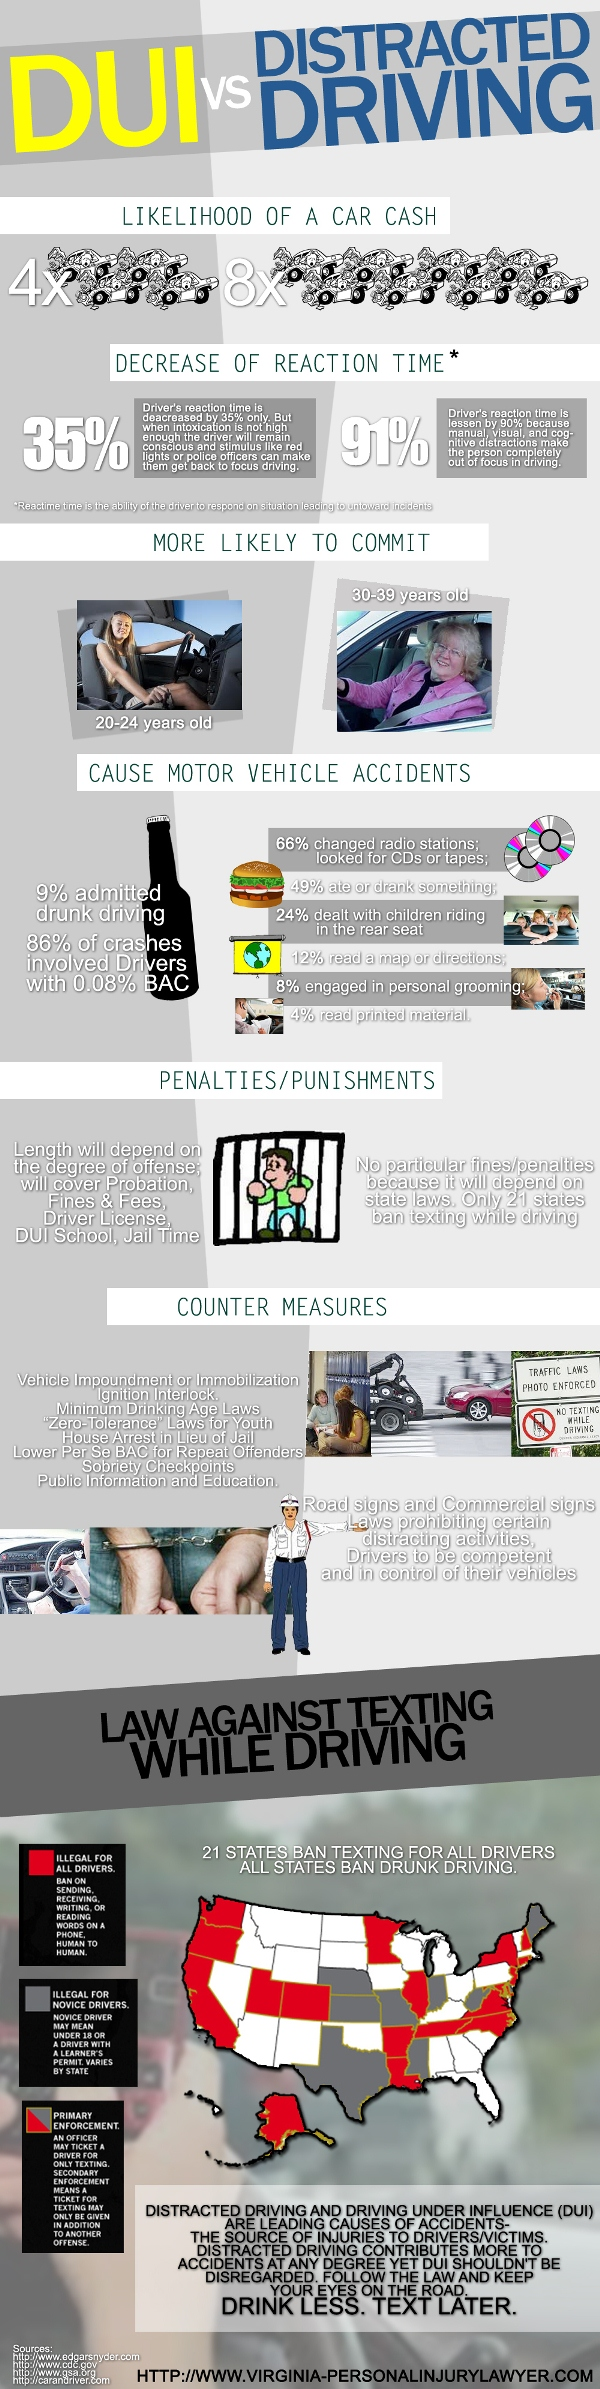 DUI Vs. Distracted Driving (Infographic)